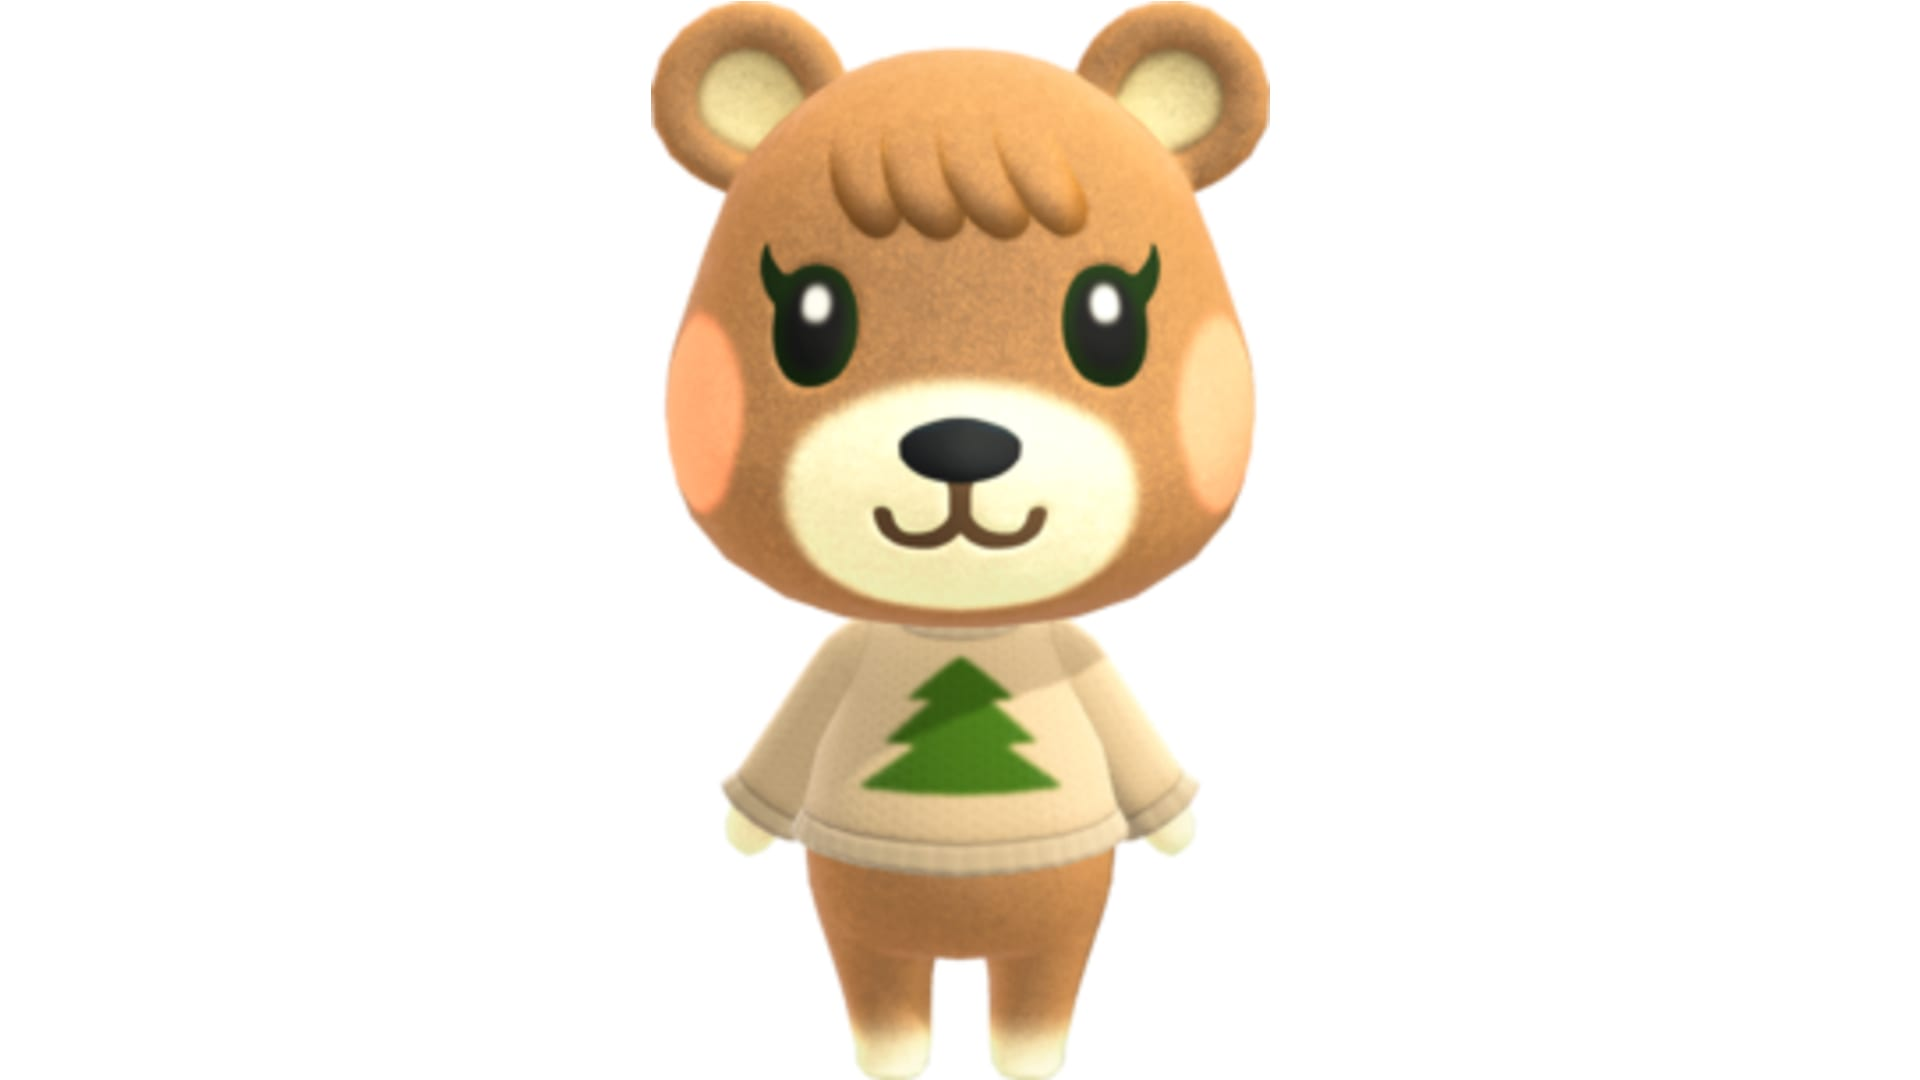 How Many of These Animal Crossing Villagers Can You Name?